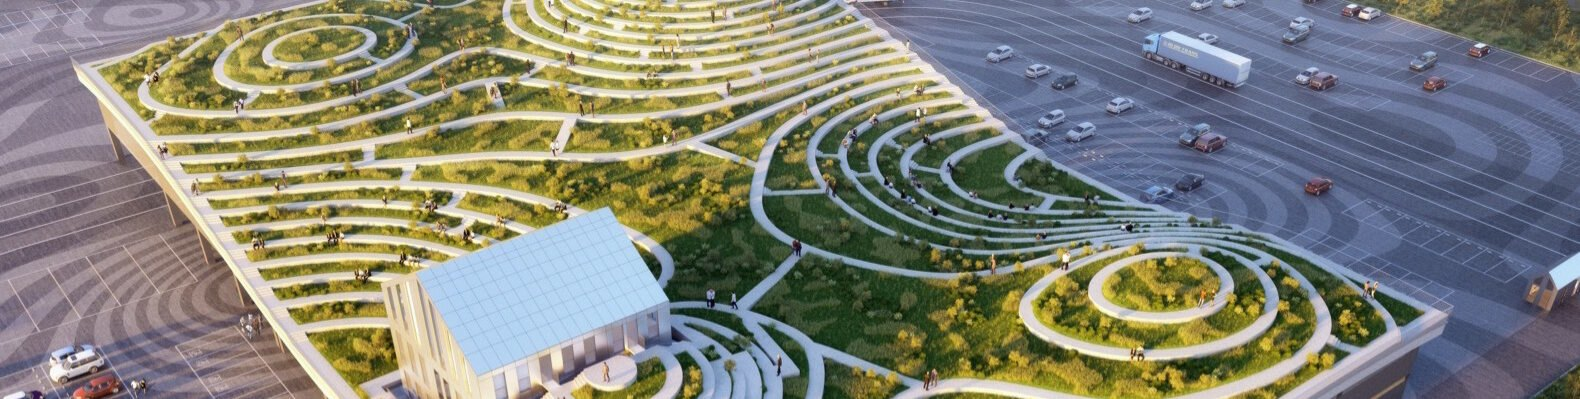 rendering of an undulating green roof